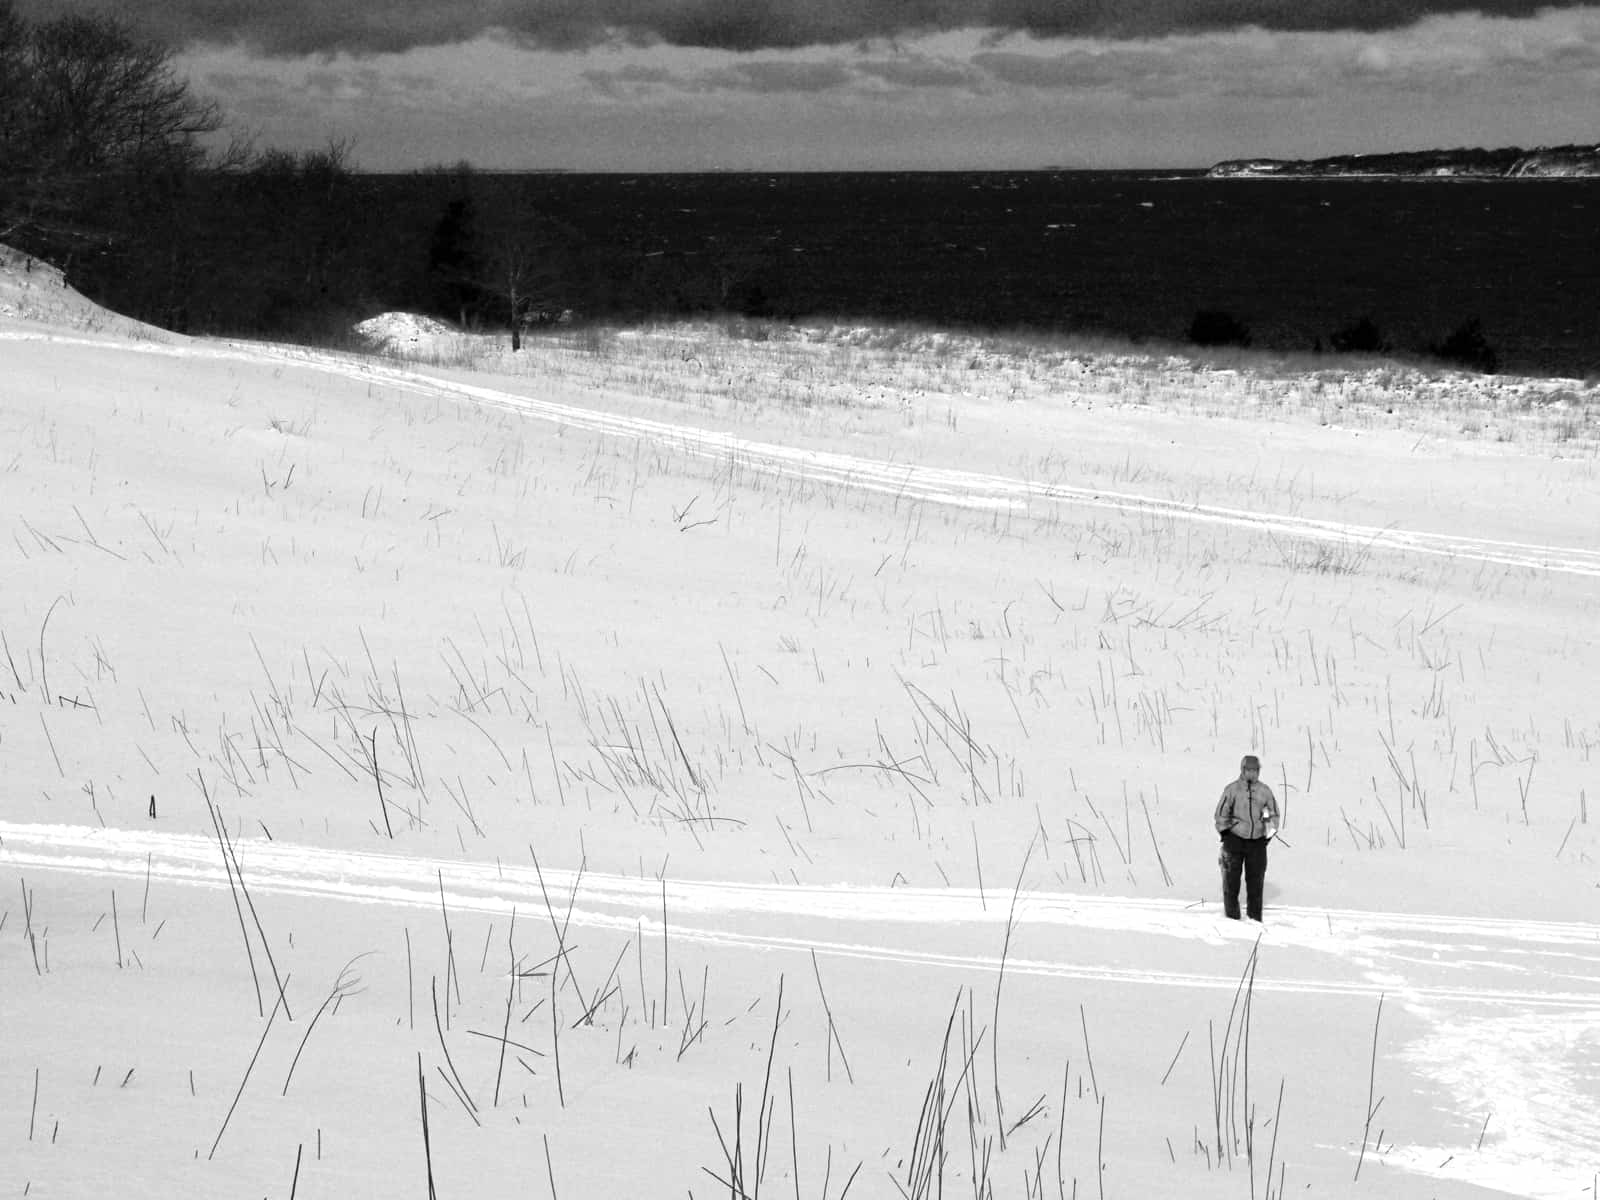 A lone figure, Eddie Ecker Park on Fort Pond Bay, Montauk NY, photo by Sailing Montauk